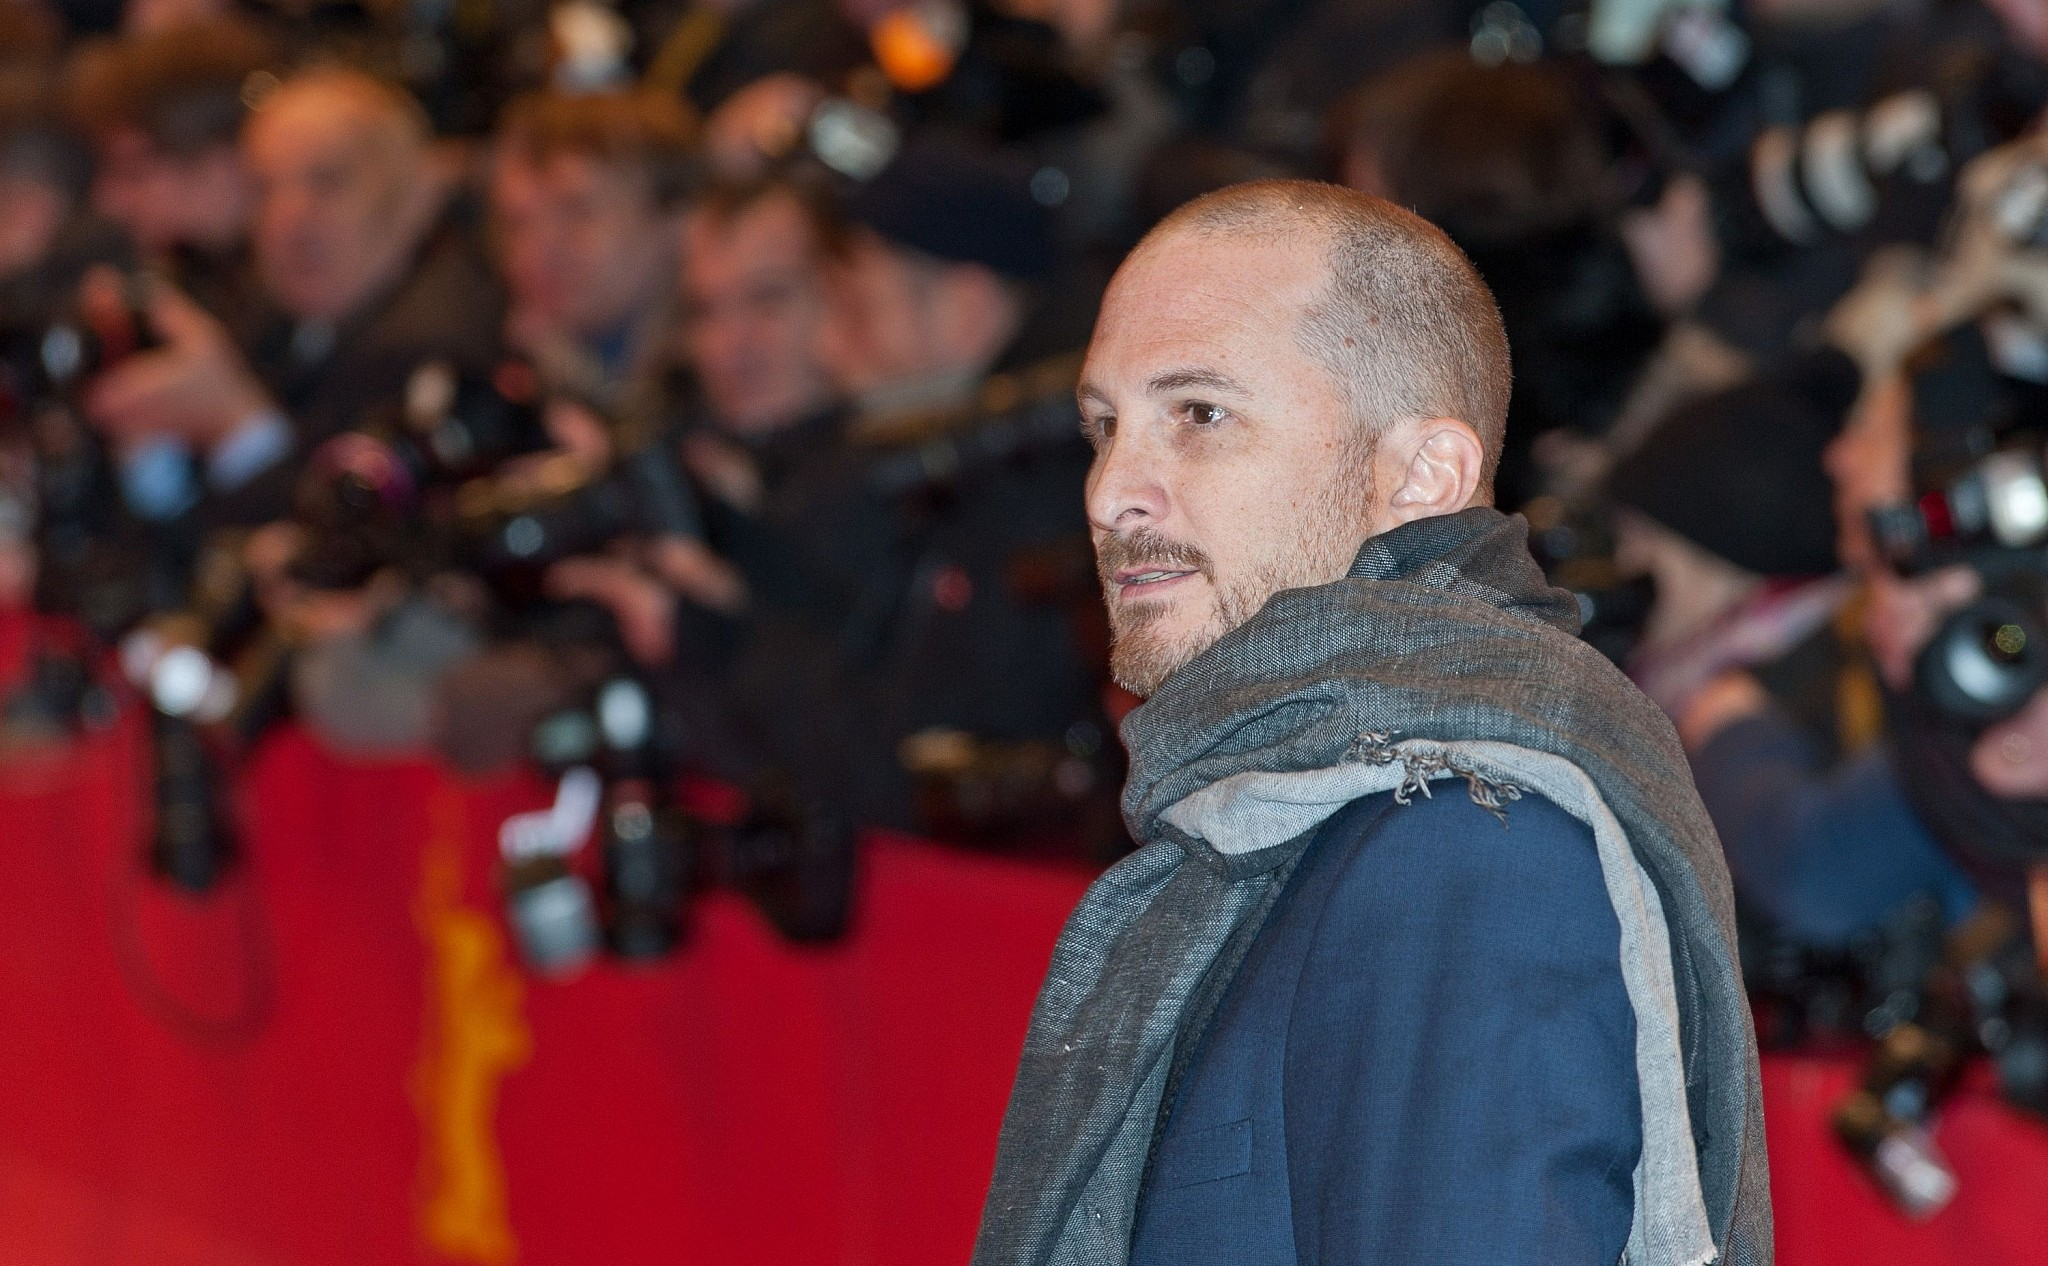 JLaw makes first red carpet appearance with boyfriend Darren Aronofsky